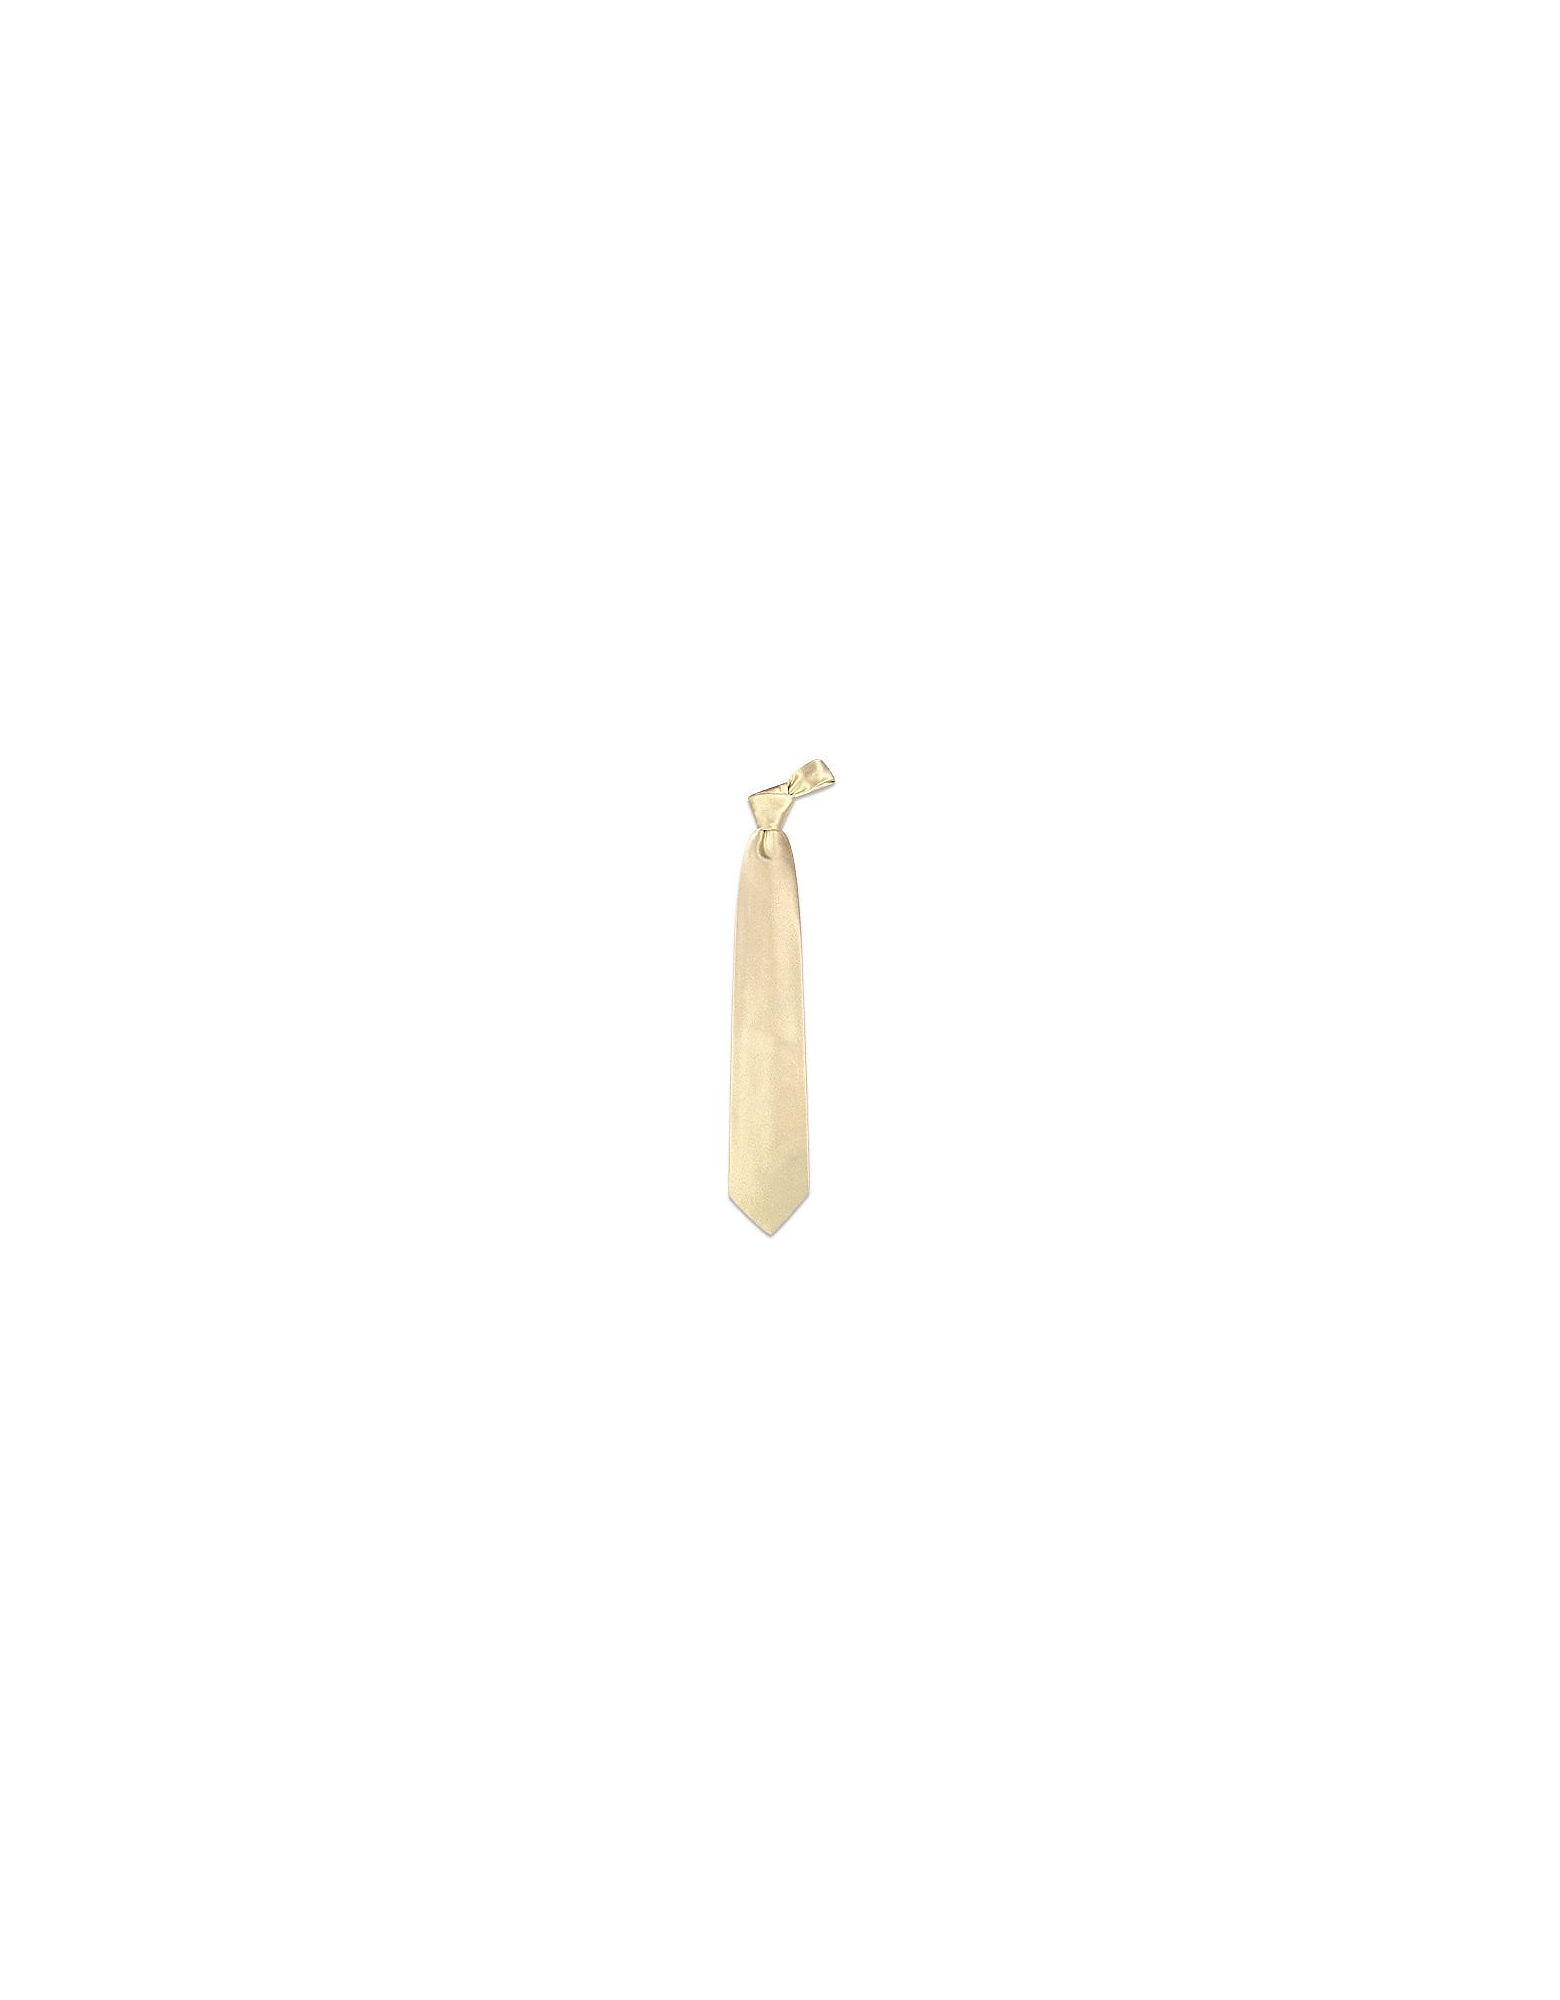 Forzieri Ties, Ivory Solid Smooth Silk Tie